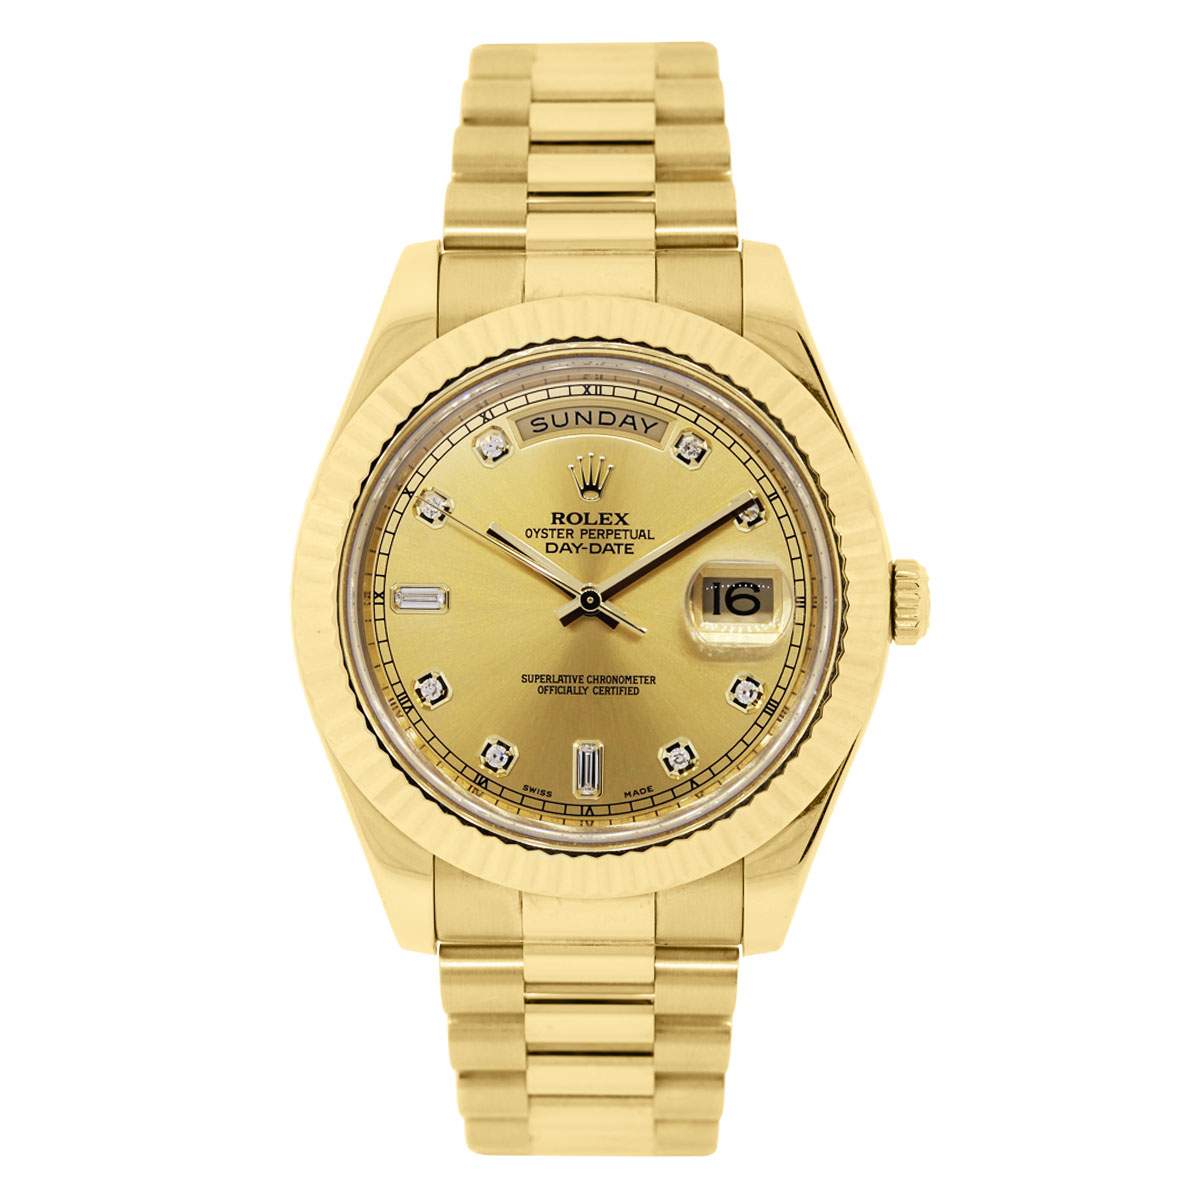 Rolex Day Date 2 Champagne and Diamond Dial Watch